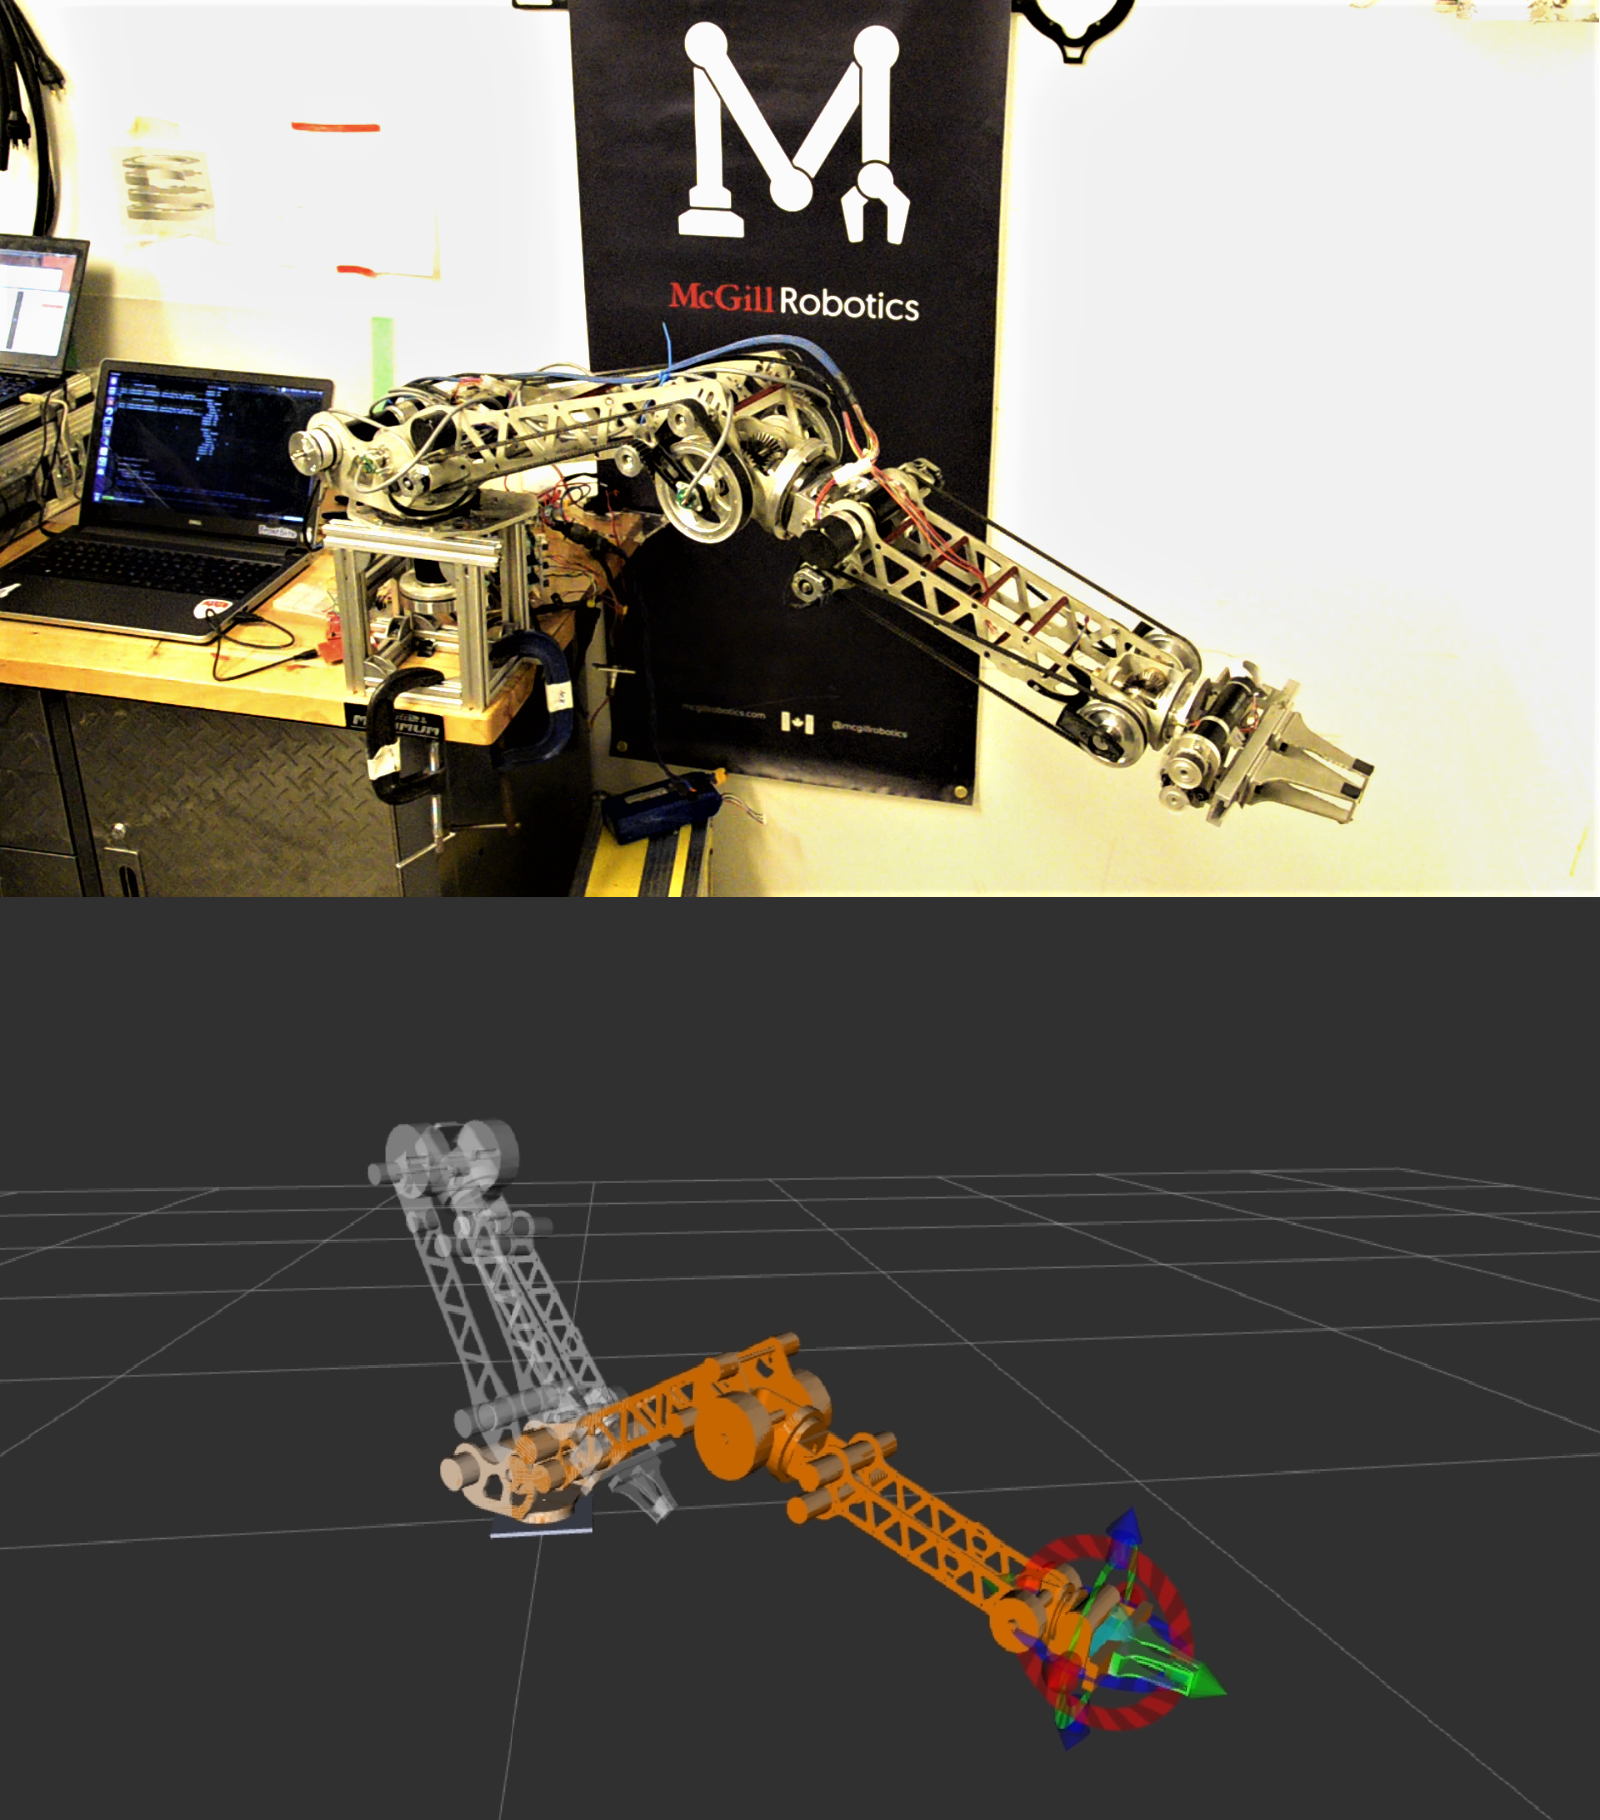 Thanks to encoder feedback and control loops, controlling the arm based on the position of its end-effector eases the accomplishment of competition tasks.